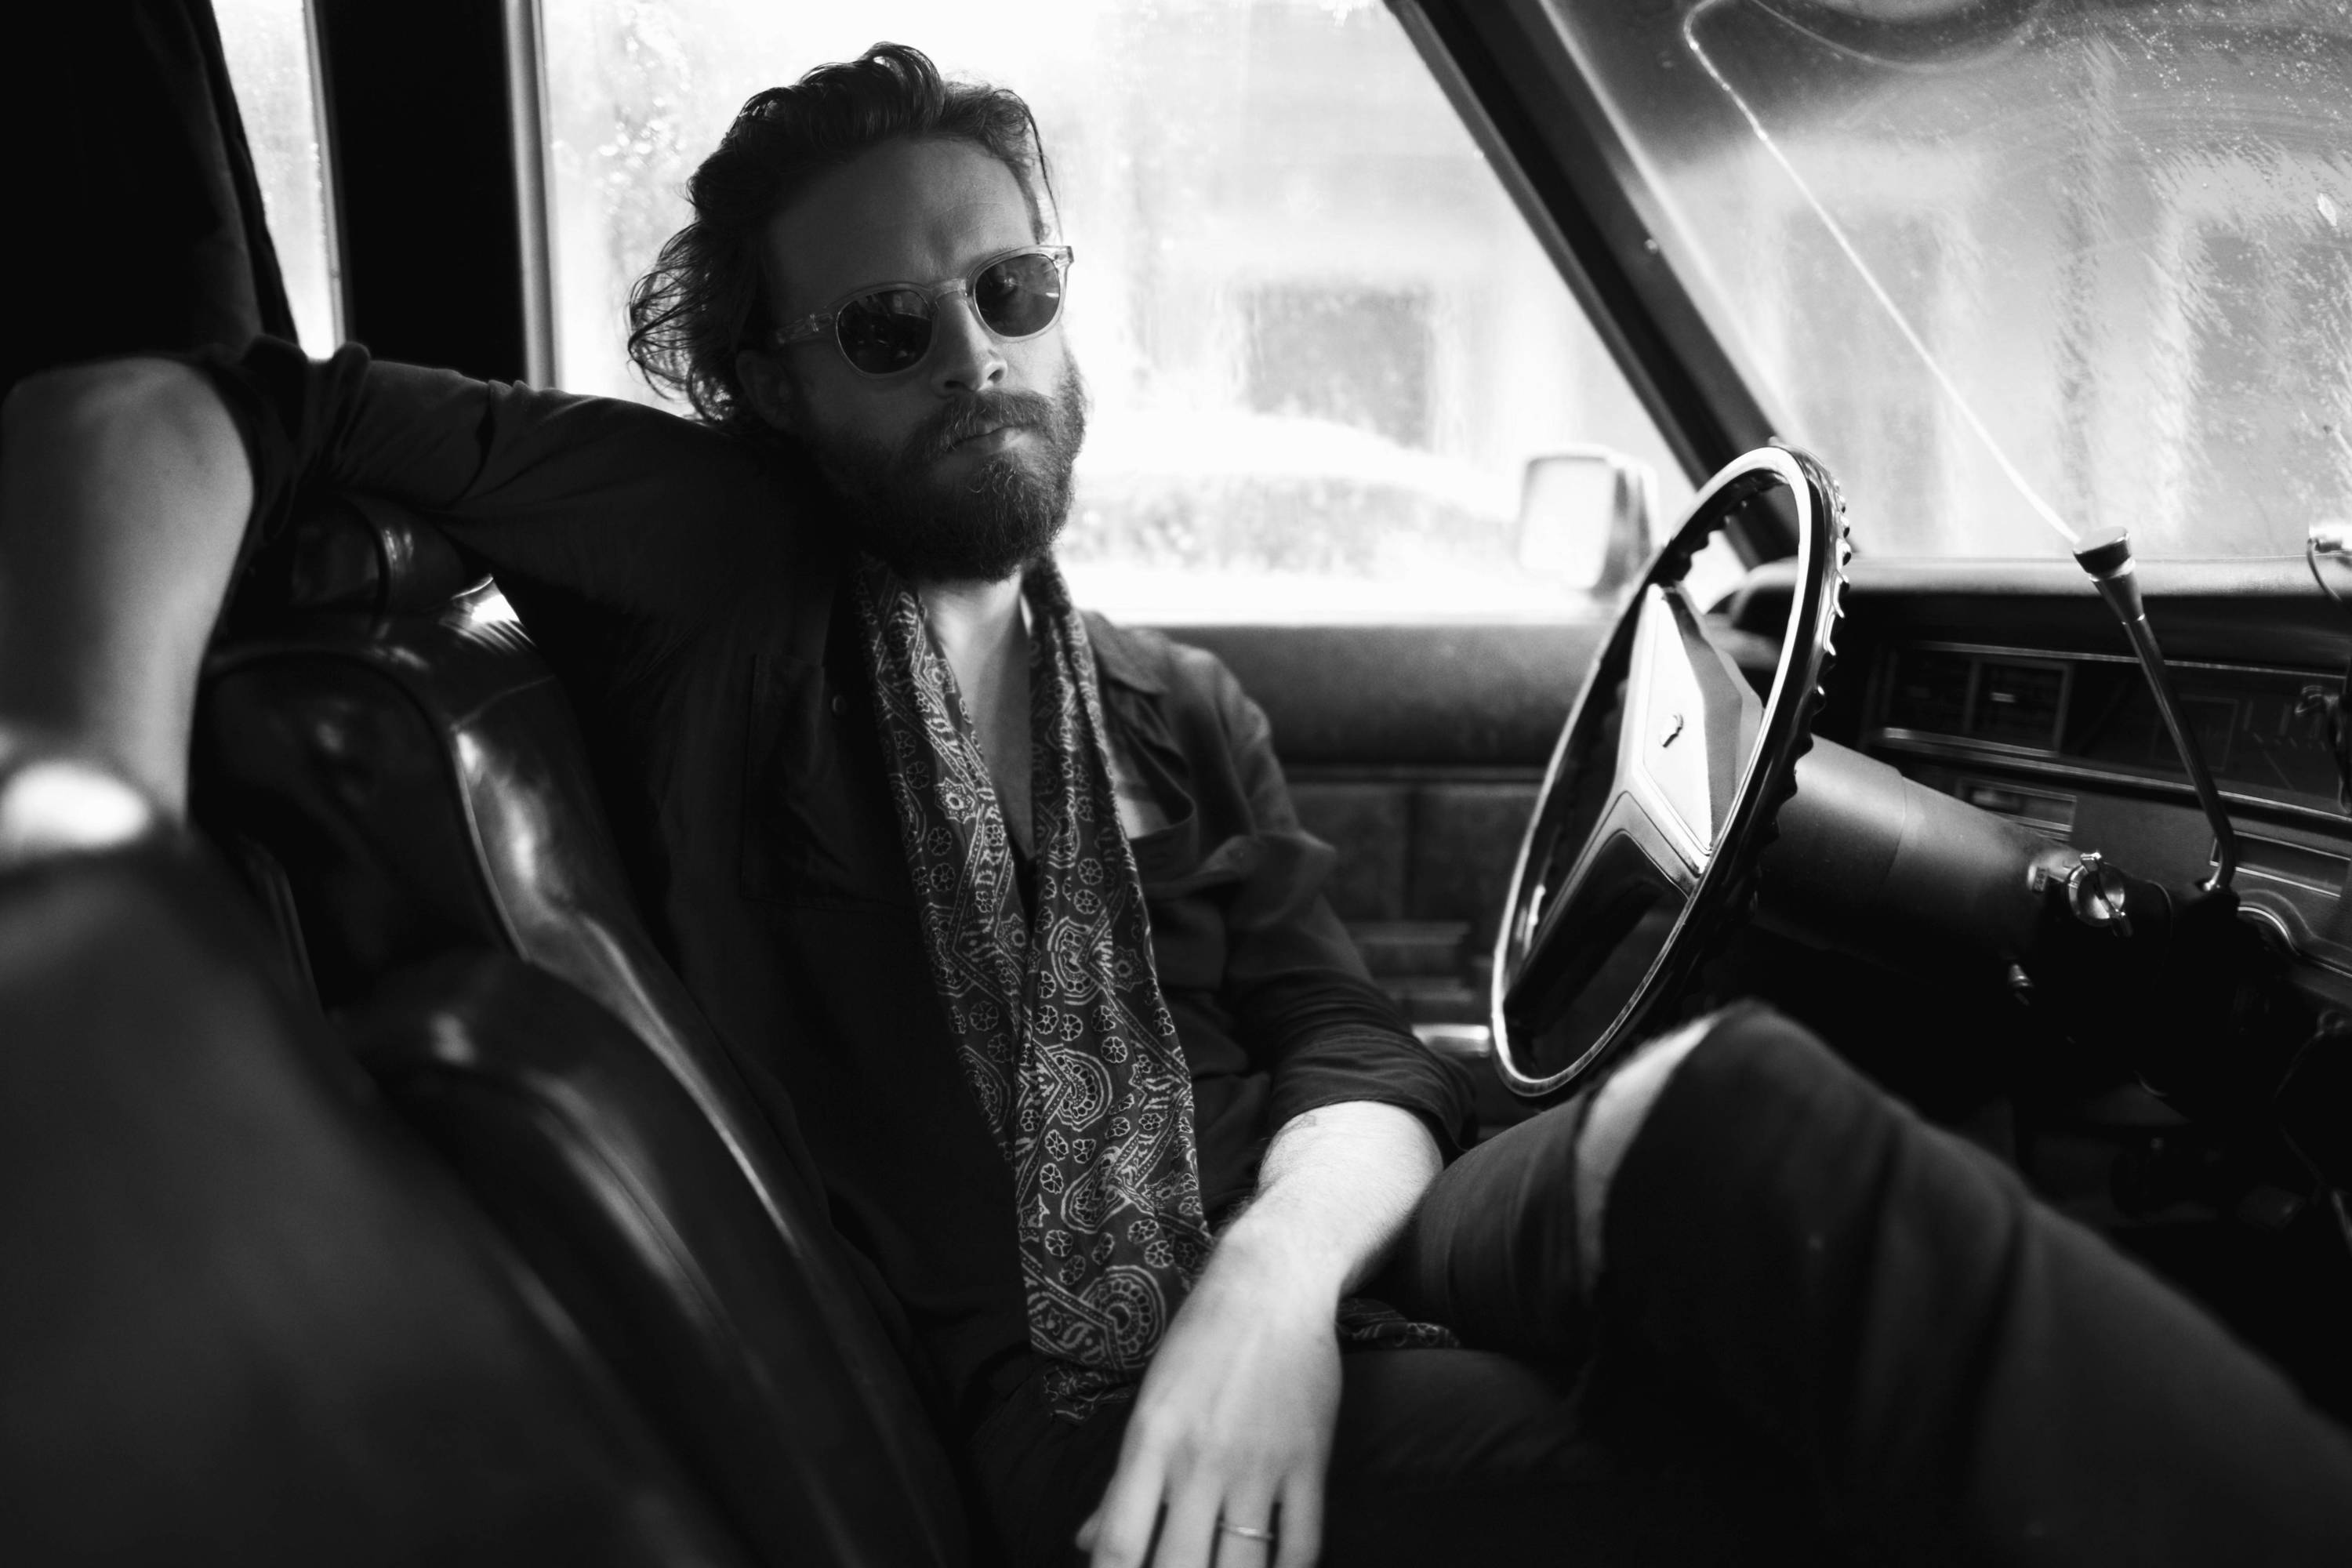 Father John Misty opens up about marriage, New Orleans and death